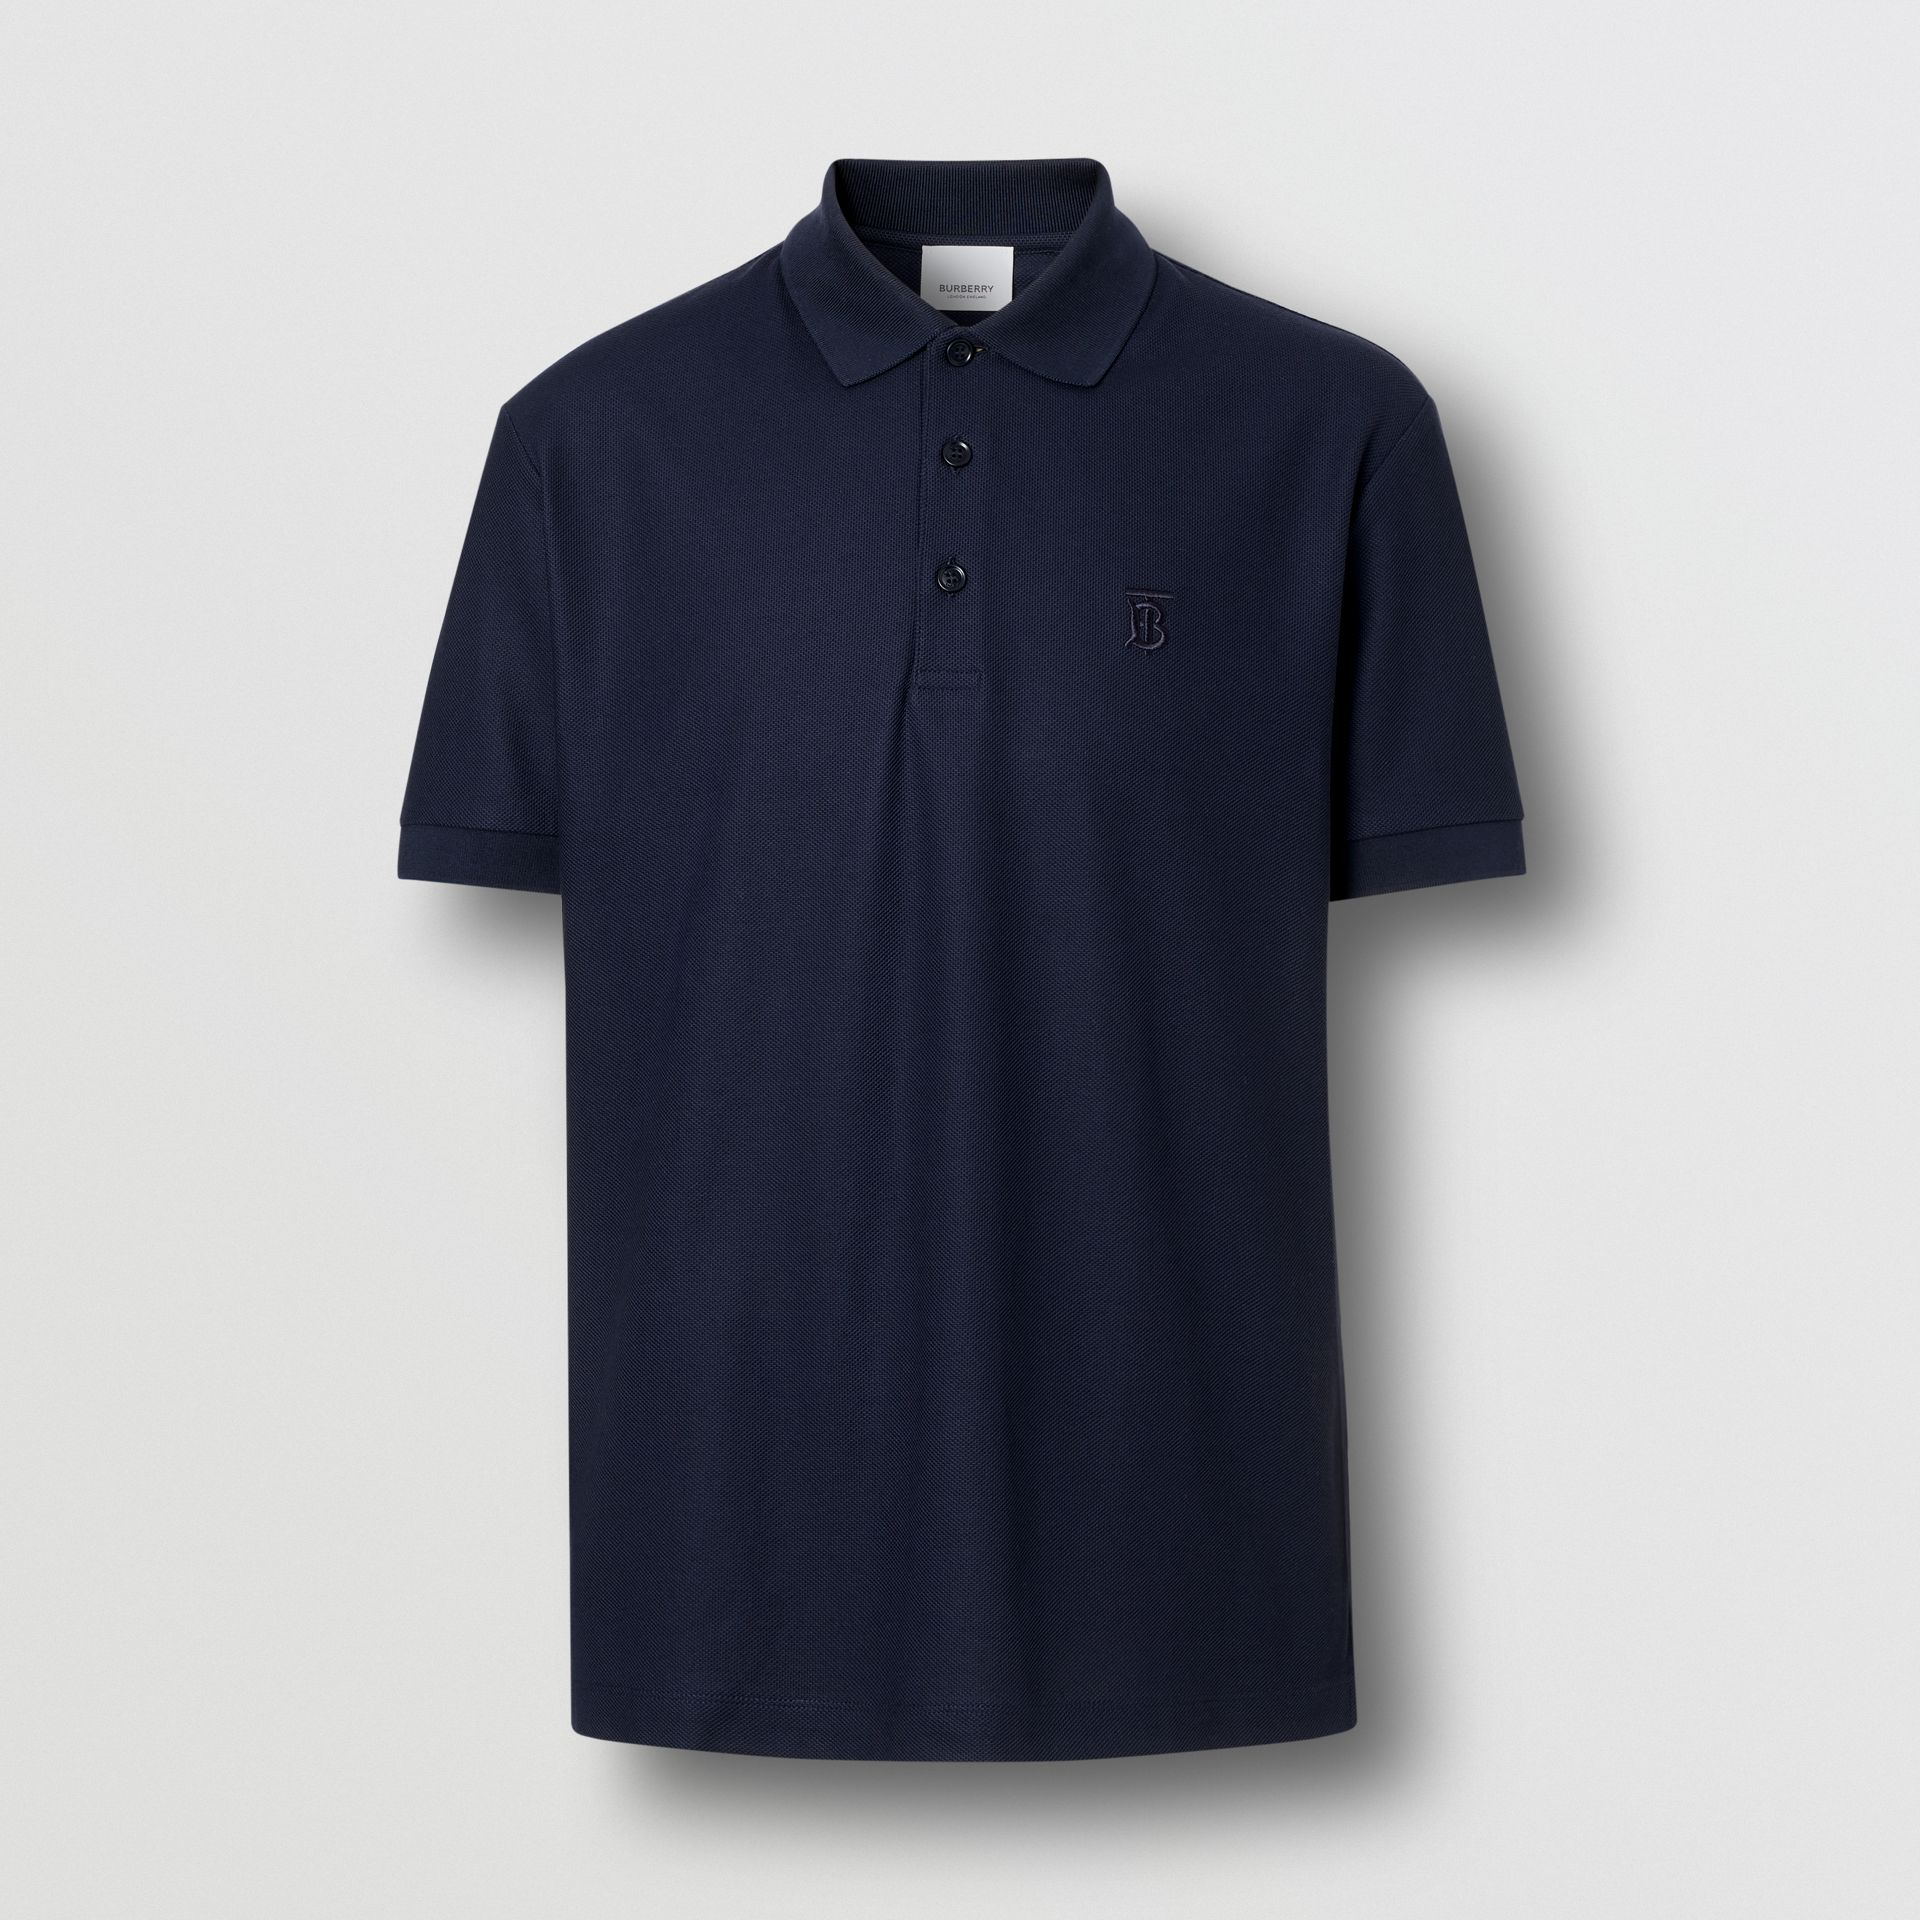 Monogram Motif Cotton Piqué Polo Shirt in Navy - Men | Burberry Canada - gallery image 3